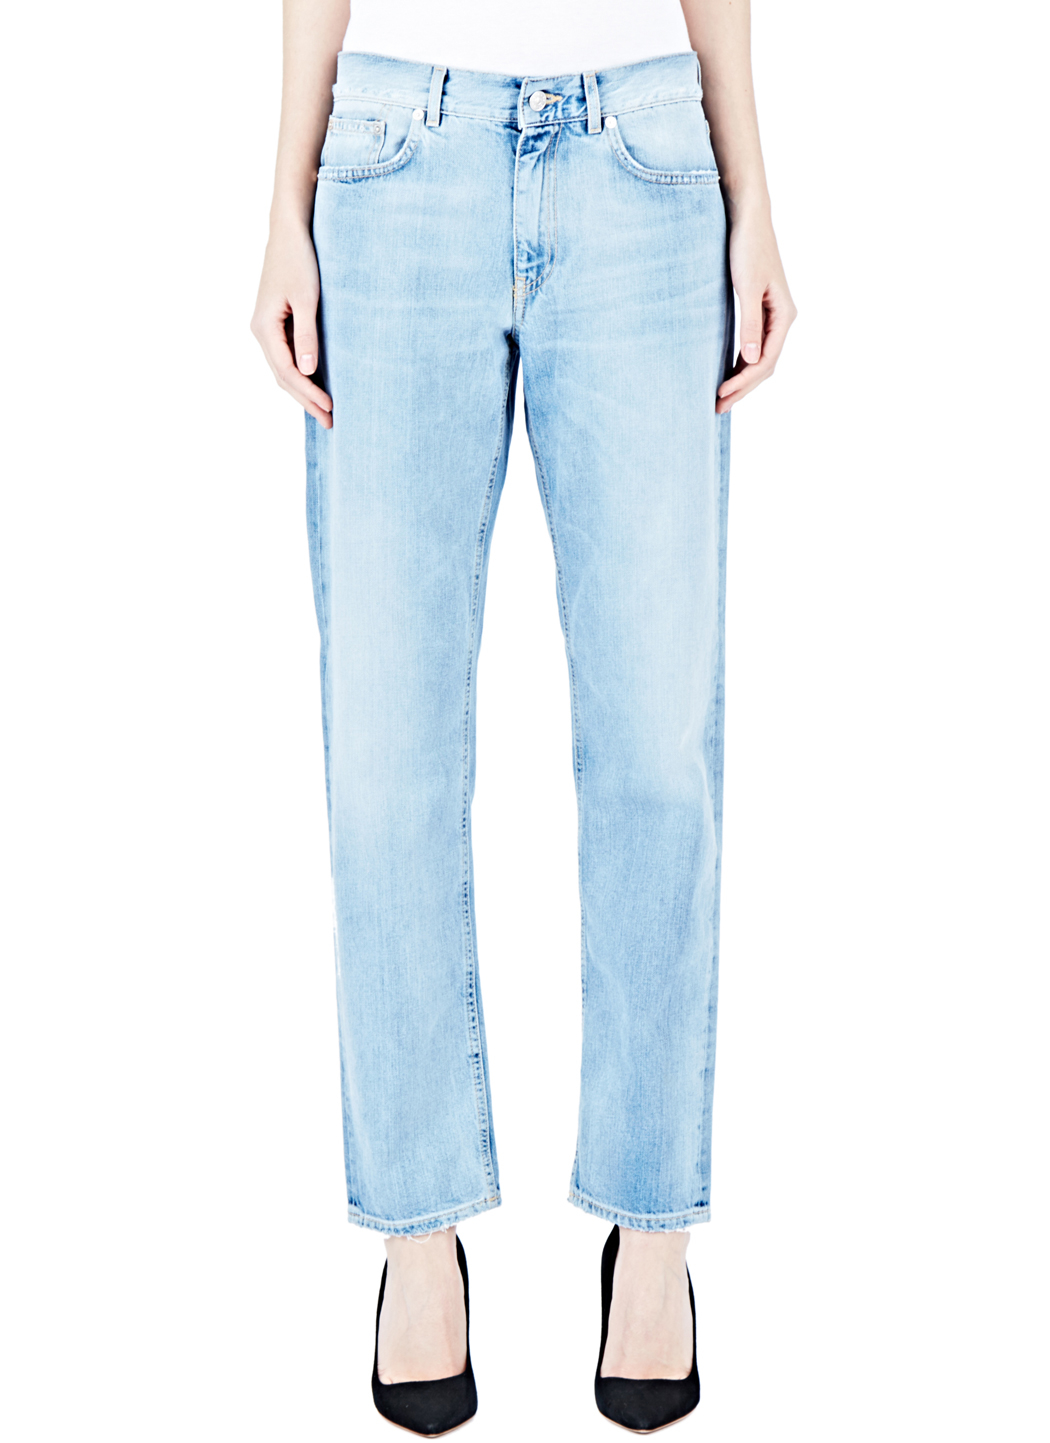 acne studios boy water jeans in blue lyst. Black Bedroom Furniture Sets. Home Design Ideas